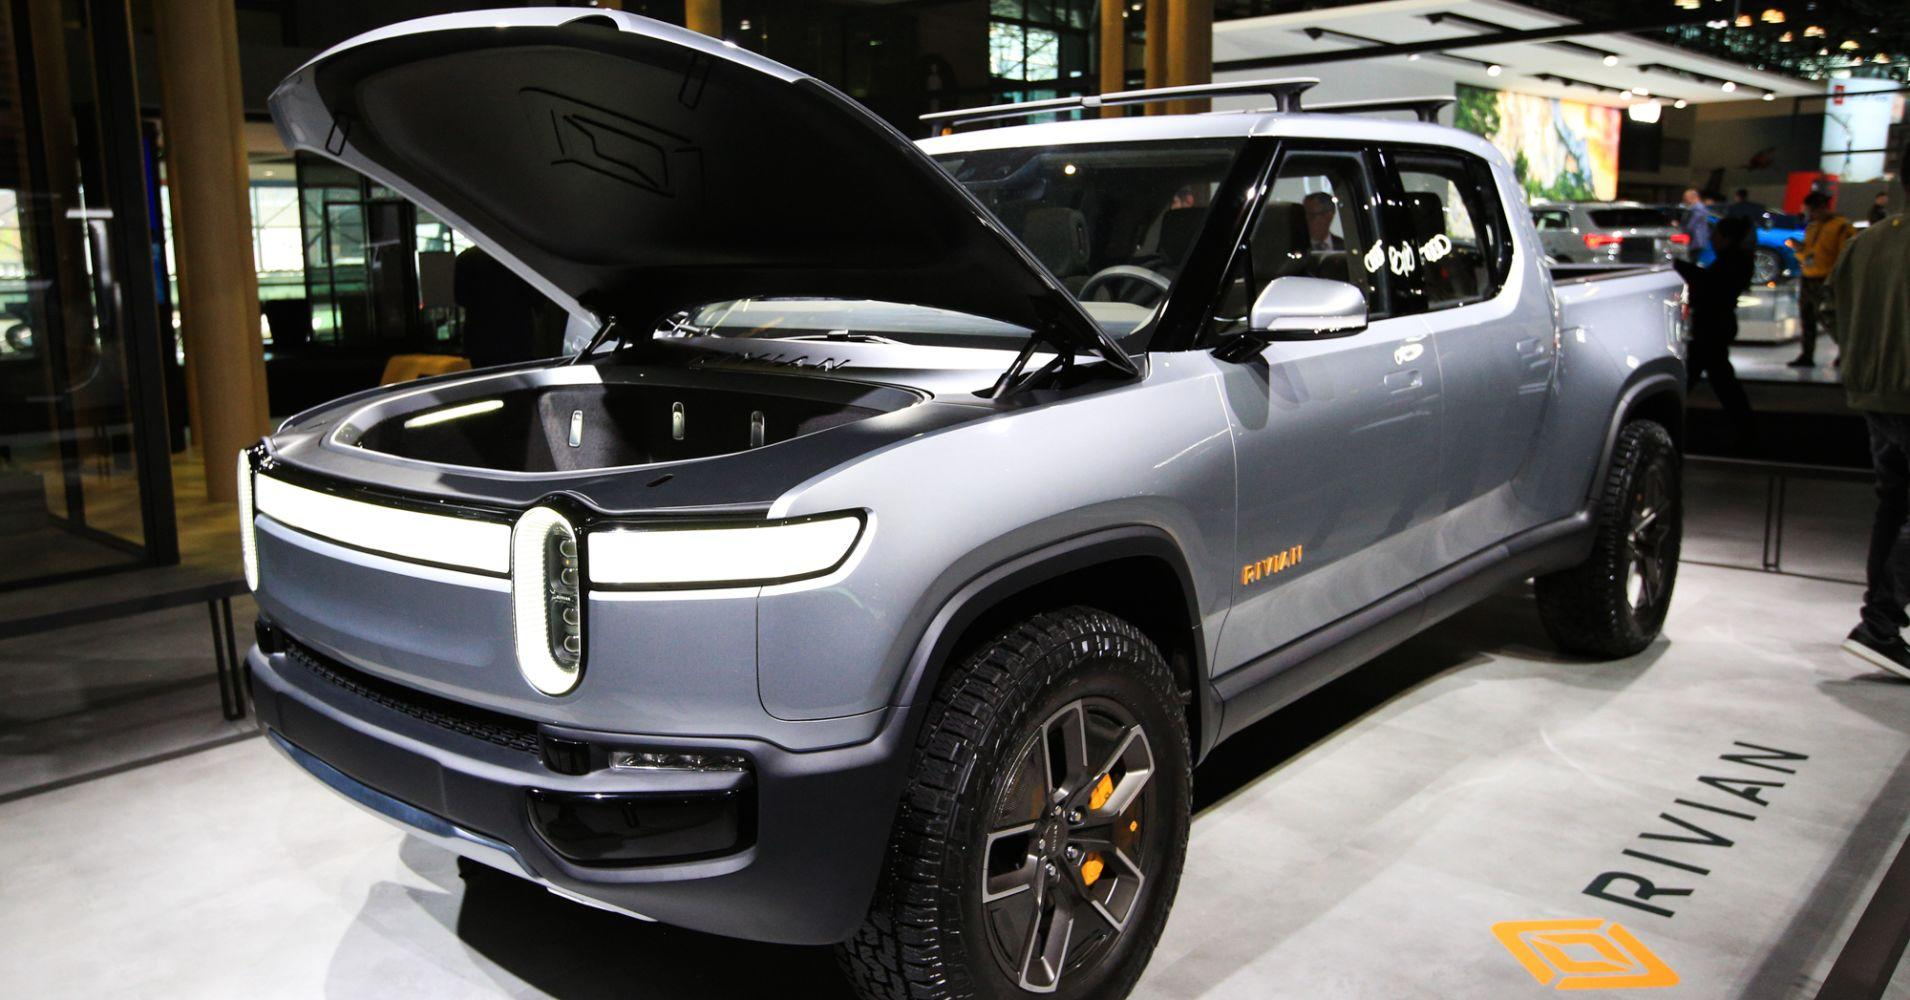 GM wanted too much from EV start-up Rivian, opening door for Ford's $500 million investment